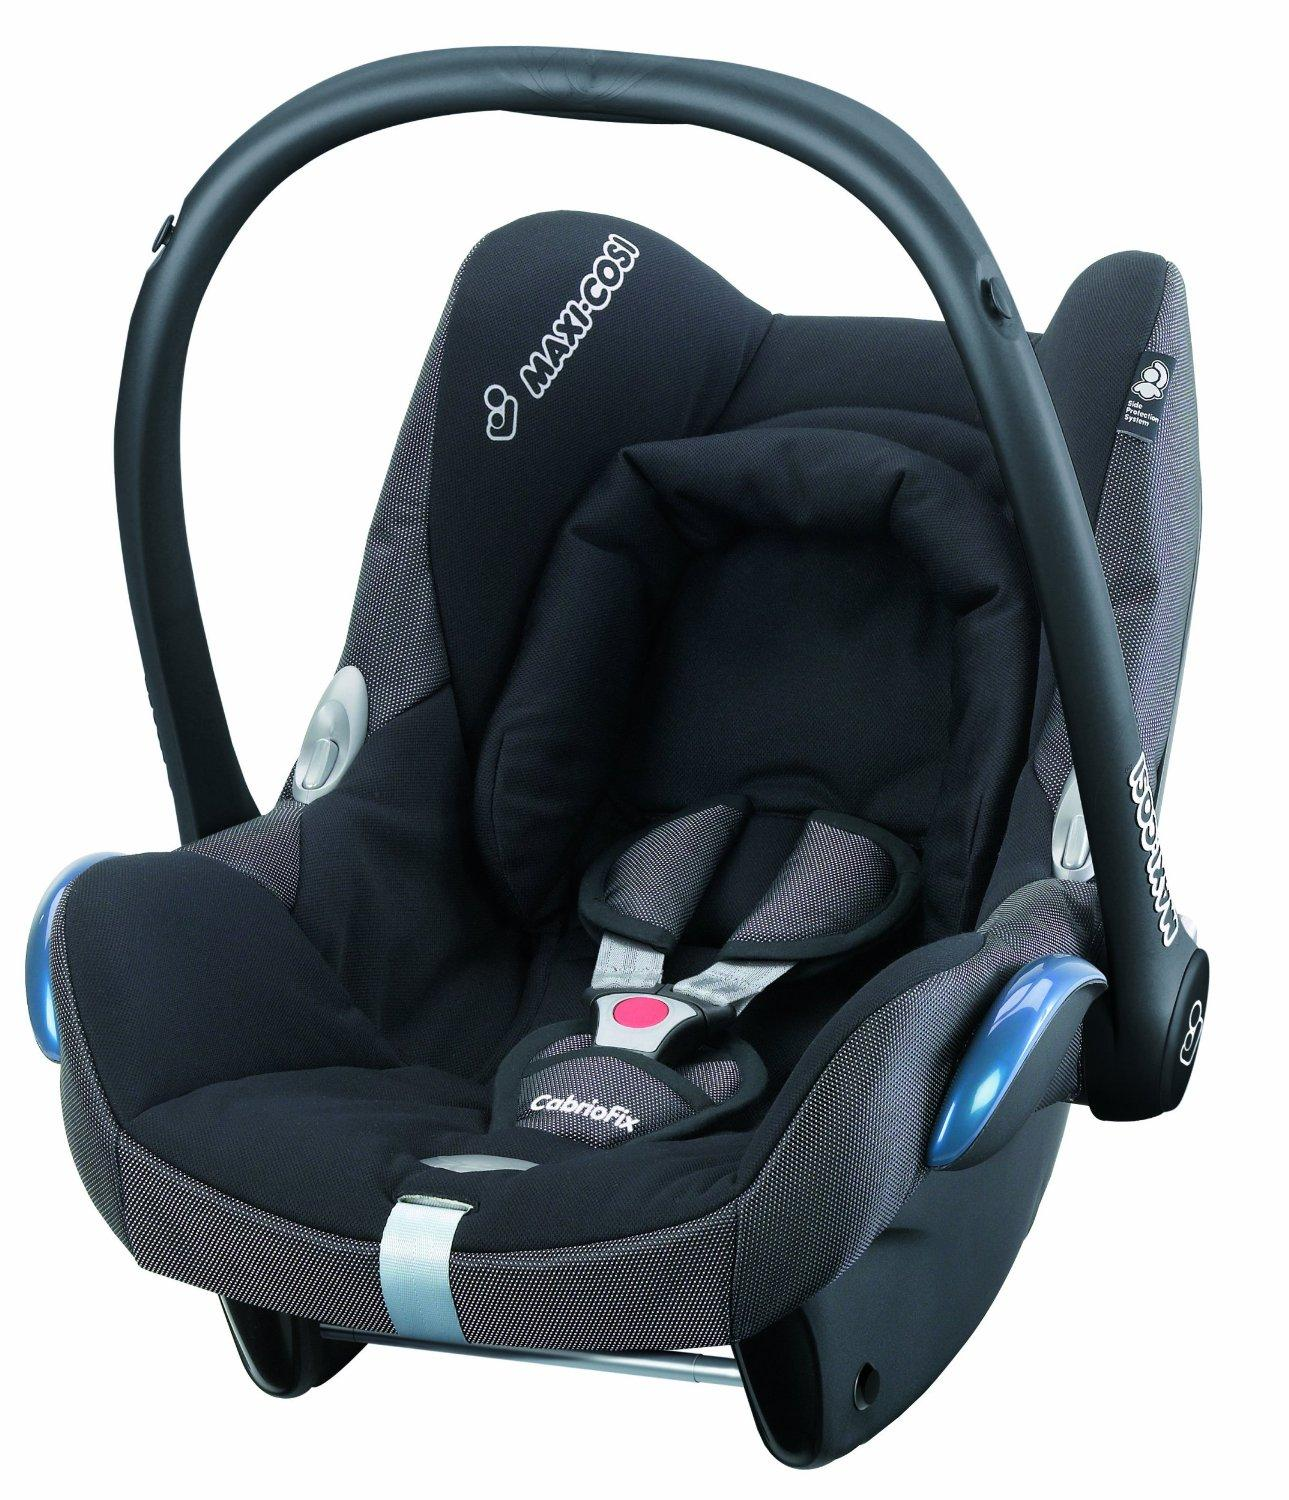 maxi cosi cabriofix group 0 infant carrier car seat black reflection baby. Black Bedroom Furniture Sets. Home Design Ideas